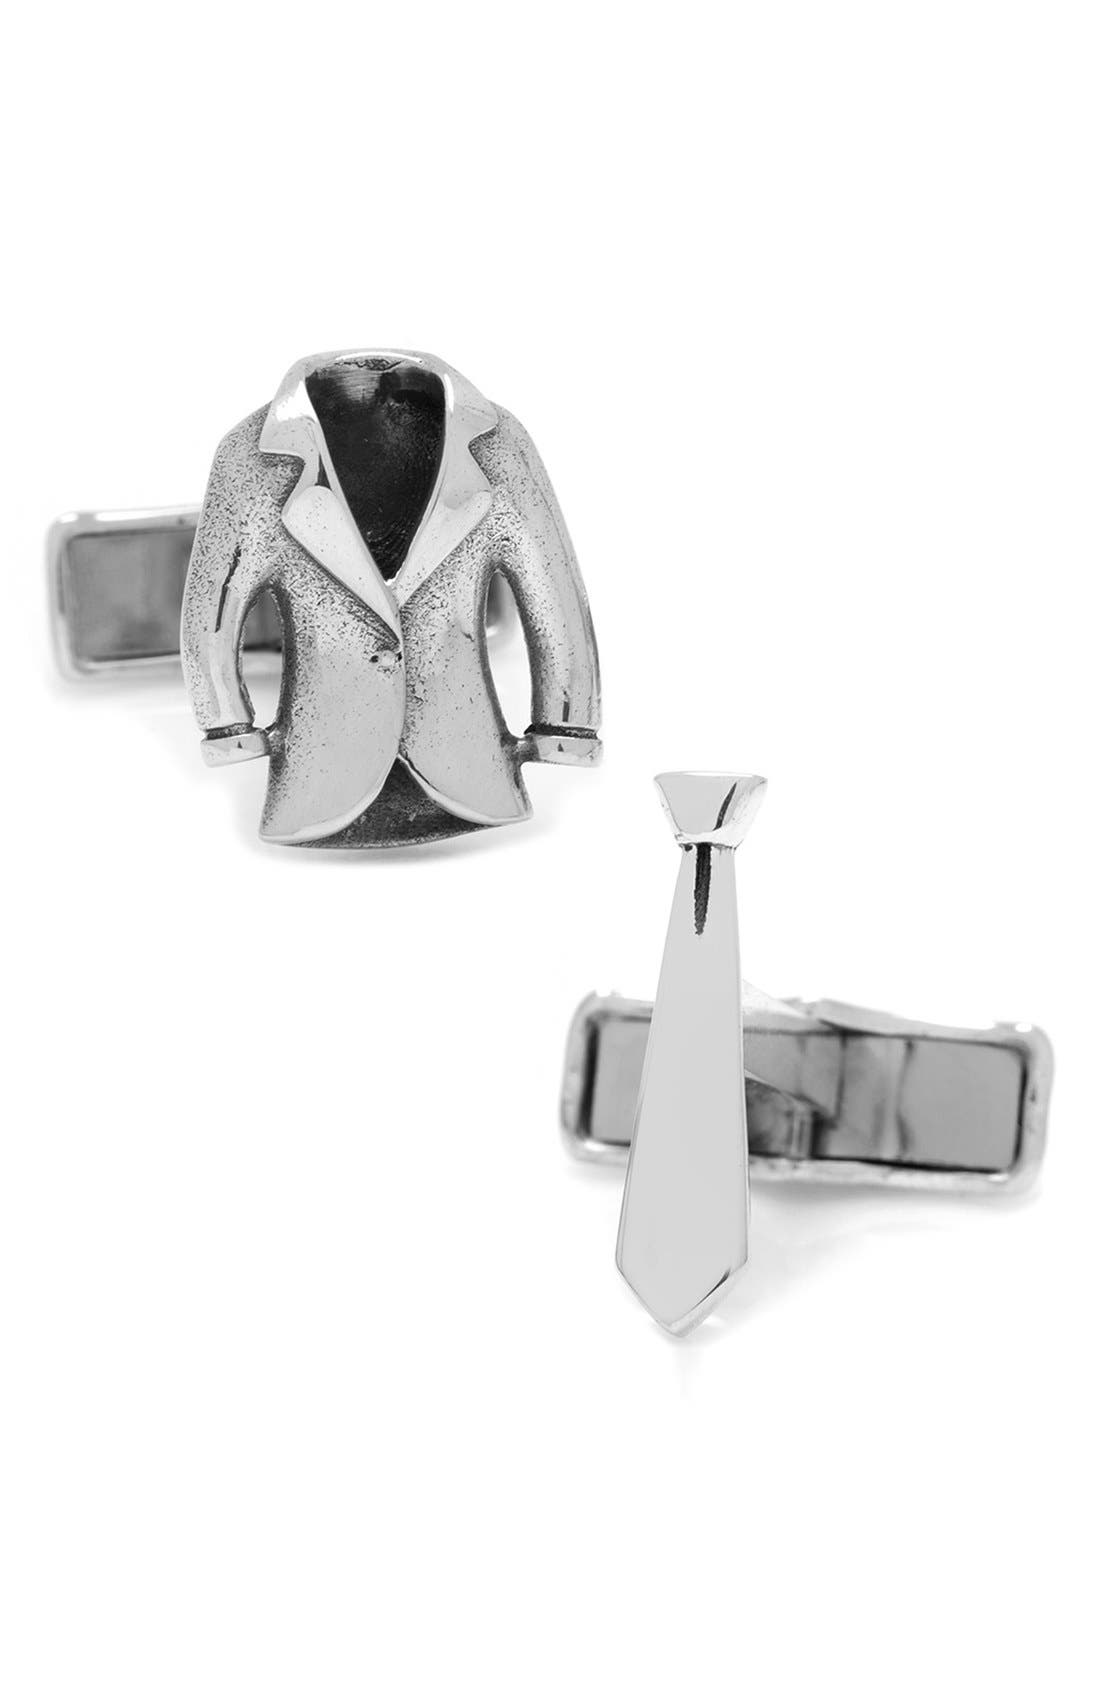 OX AND BULL TRADING CO. Suit & Tie Cuff Links